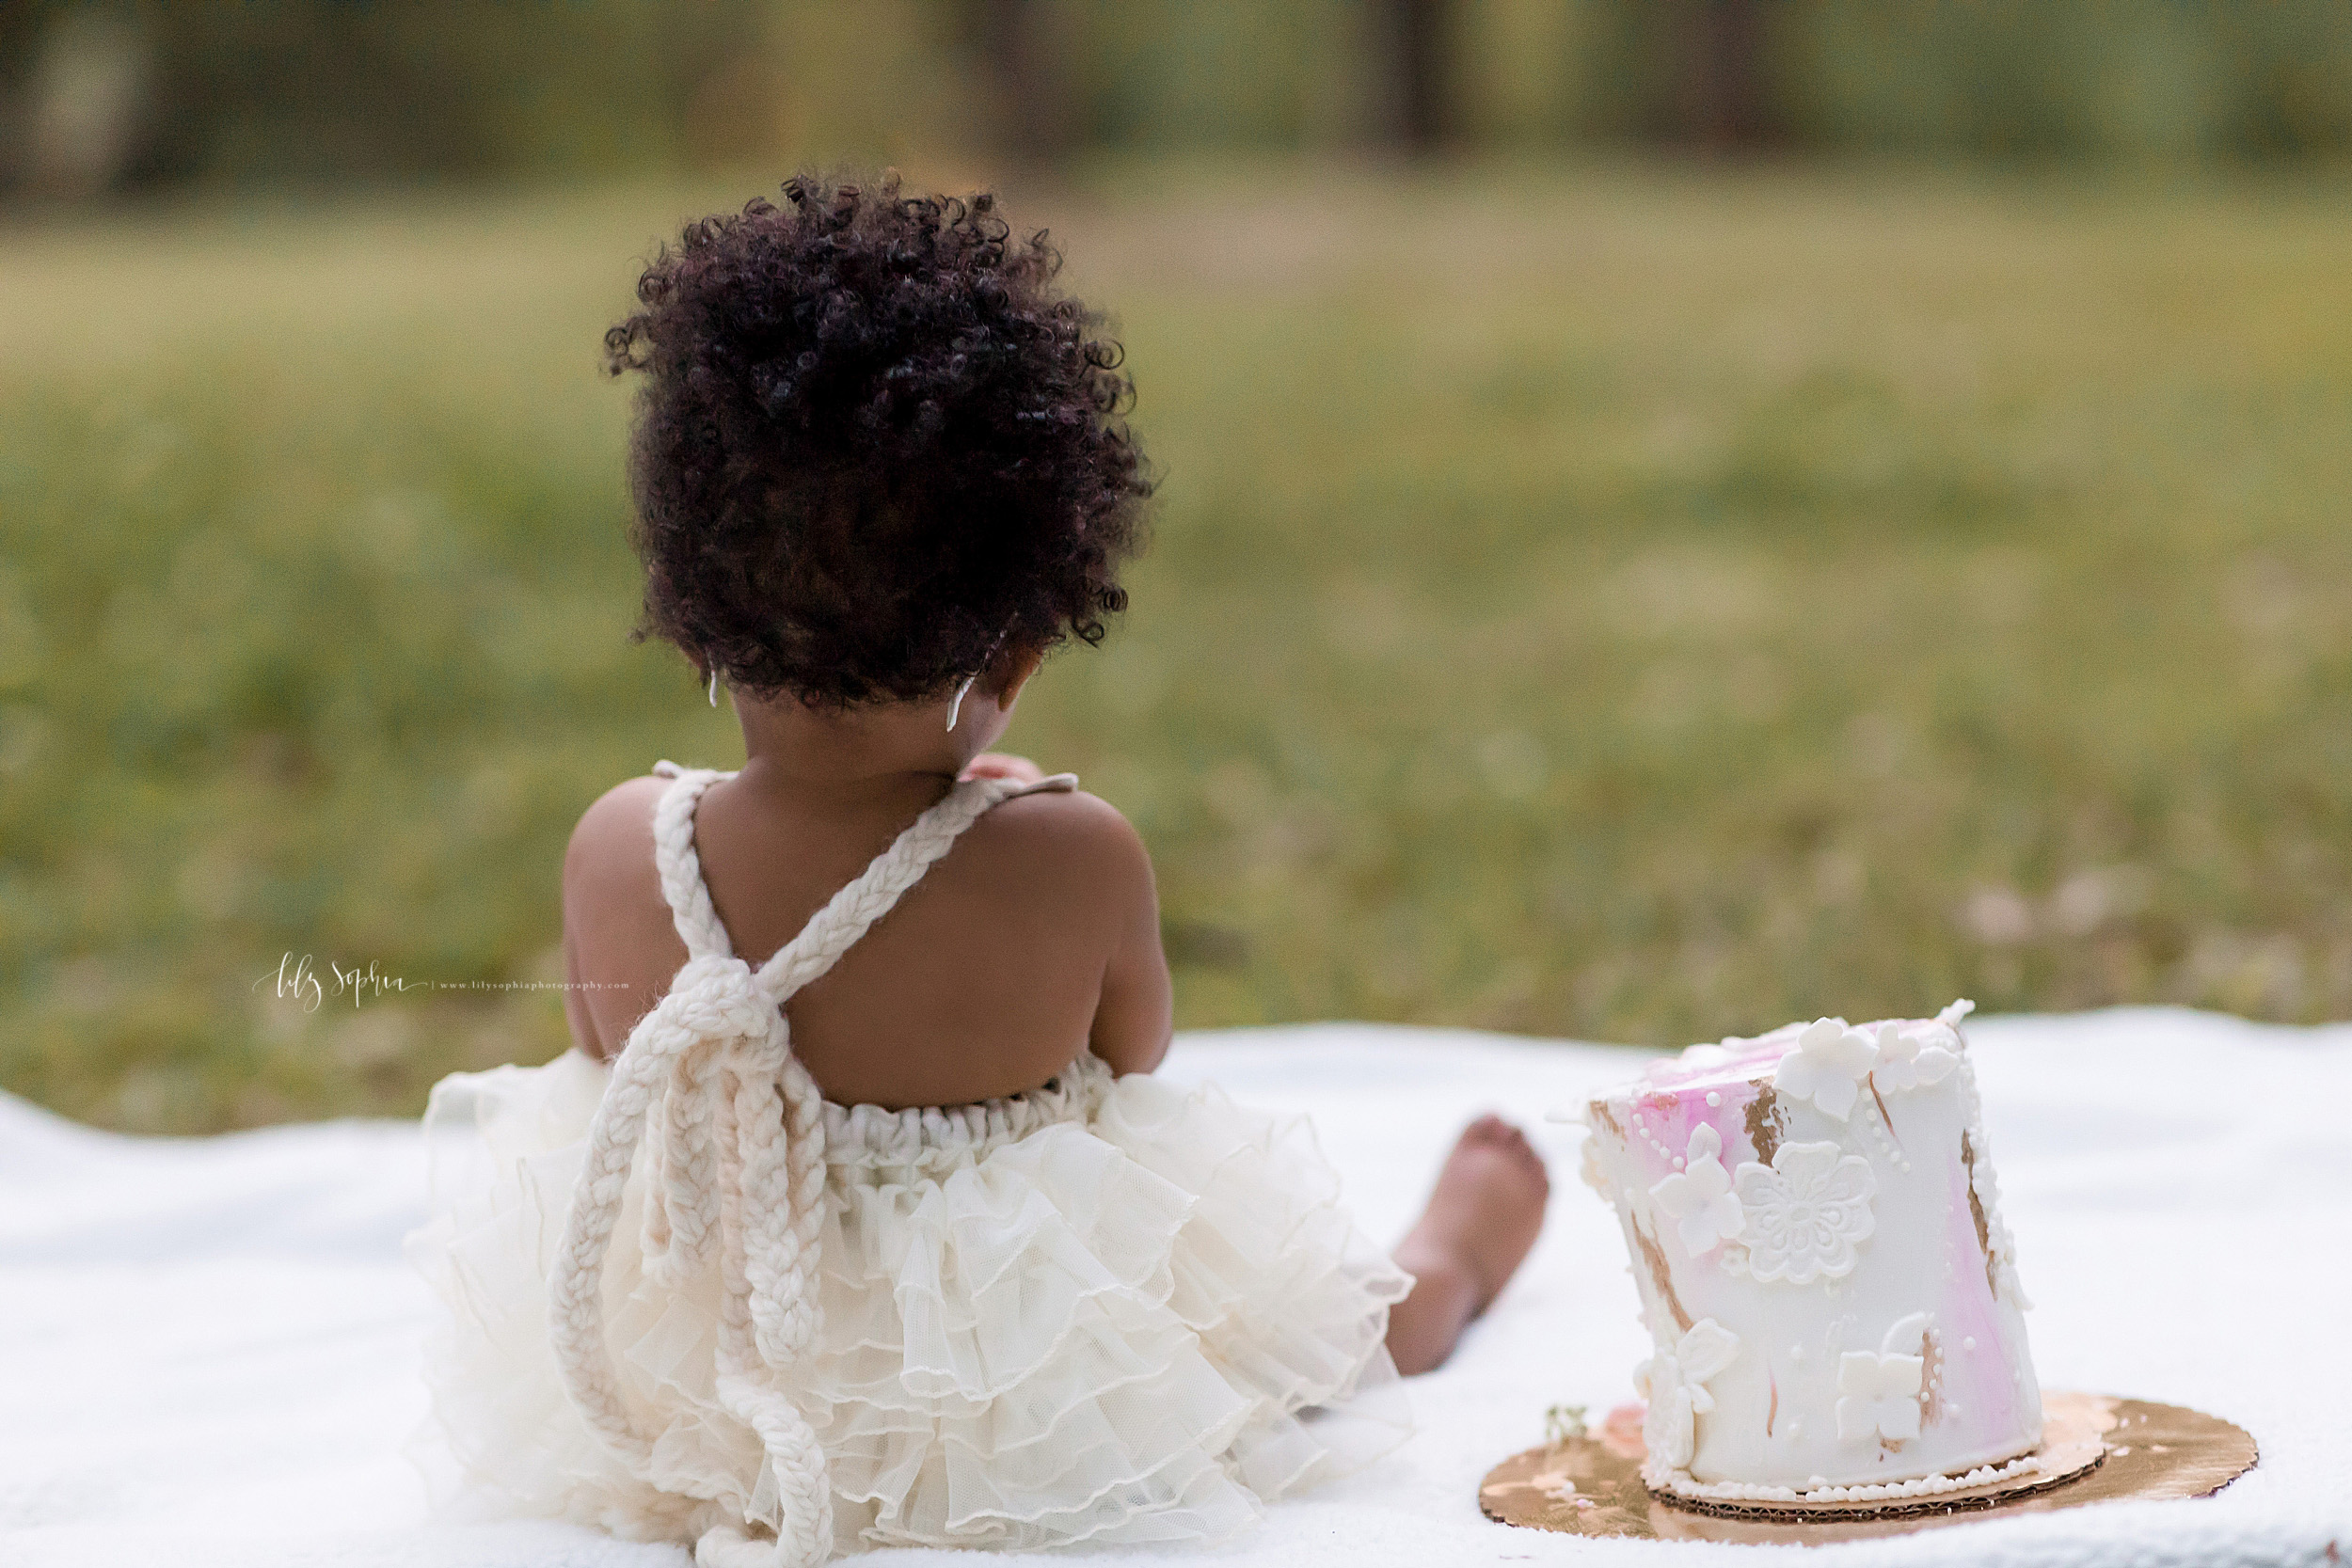 Photograph of the back of an African-American one year old in an Atlanta park at sunset.  The little girl is wearing a cream backless dress with chiffon ruffles and a braided tie as she sits on a white blanket.  Next to her is her birthday cake.